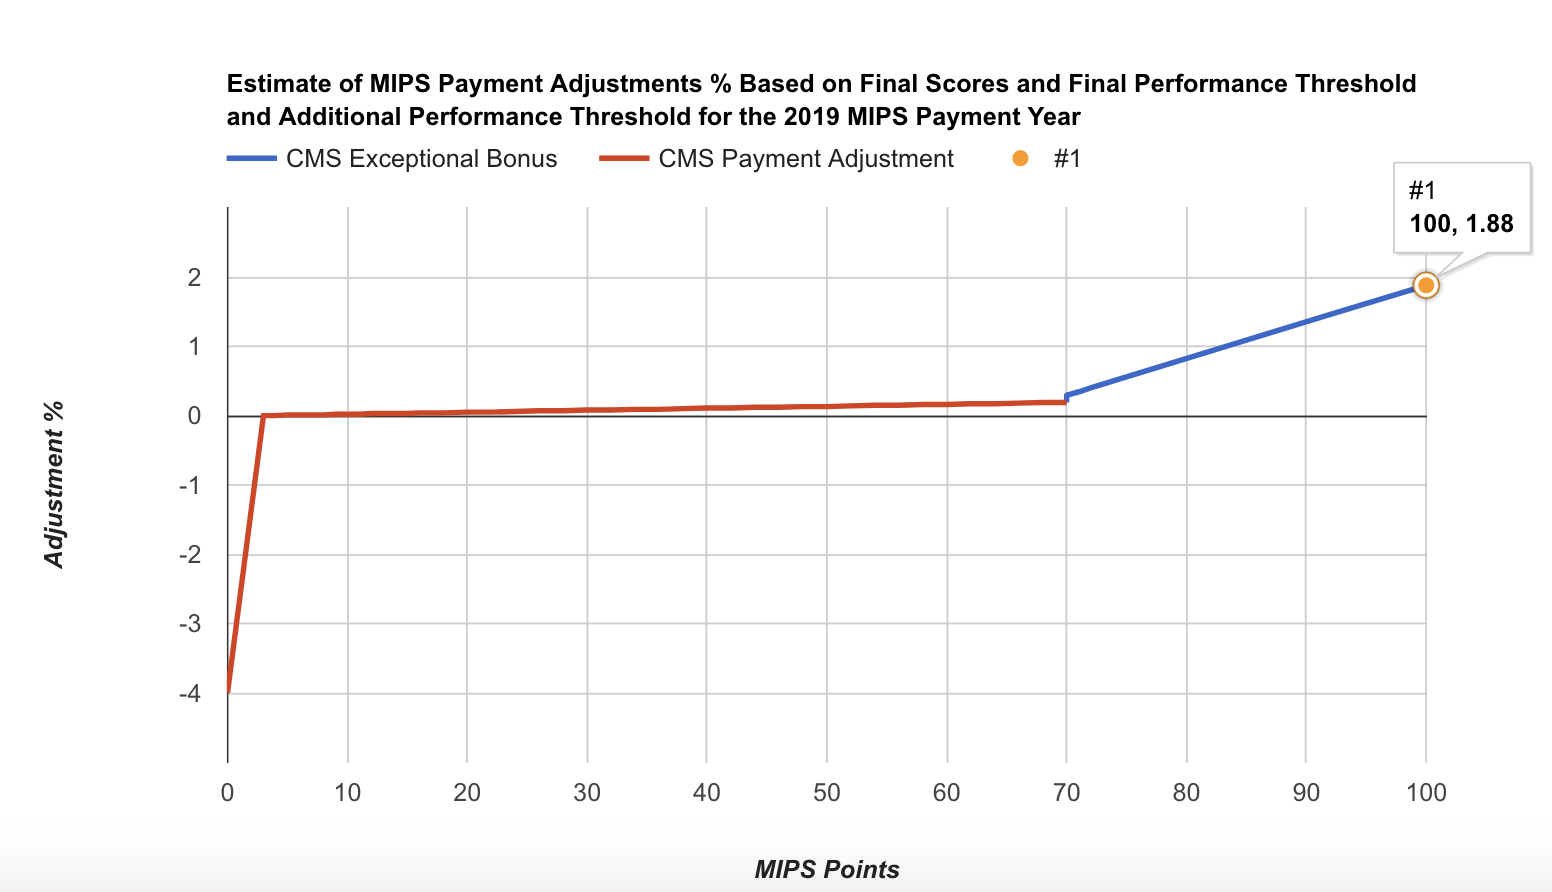 2019 MIPS Points adjustments